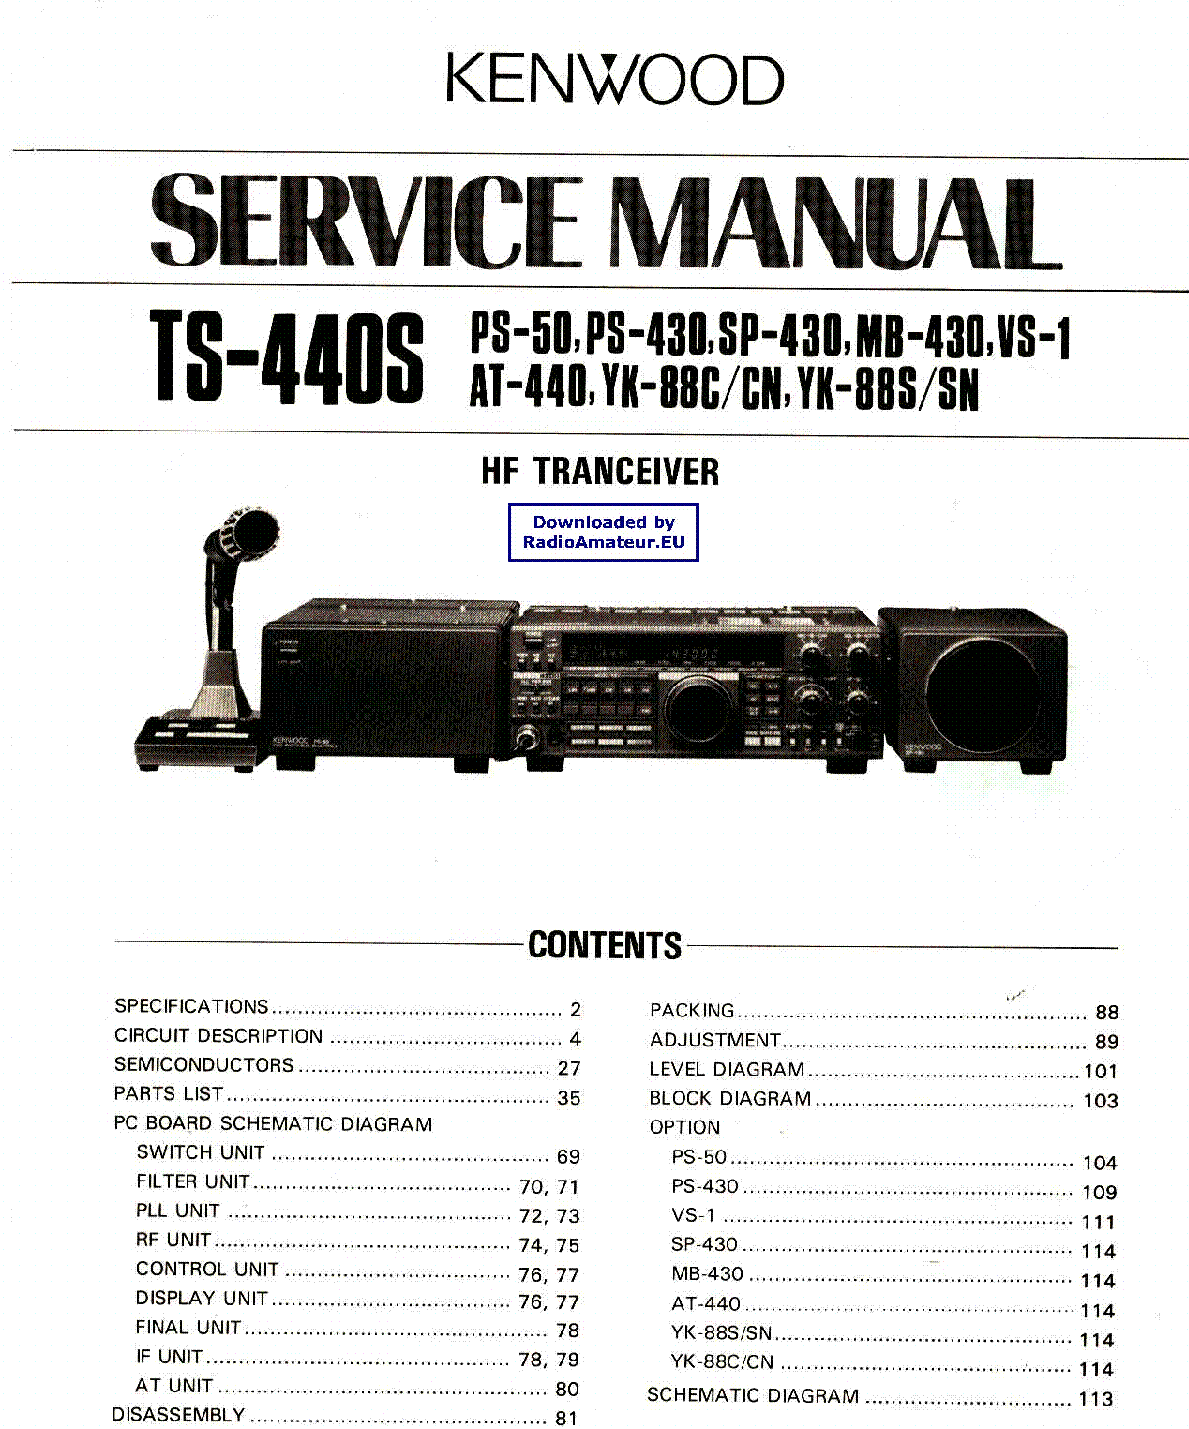 KENWOOD TS440S service manual